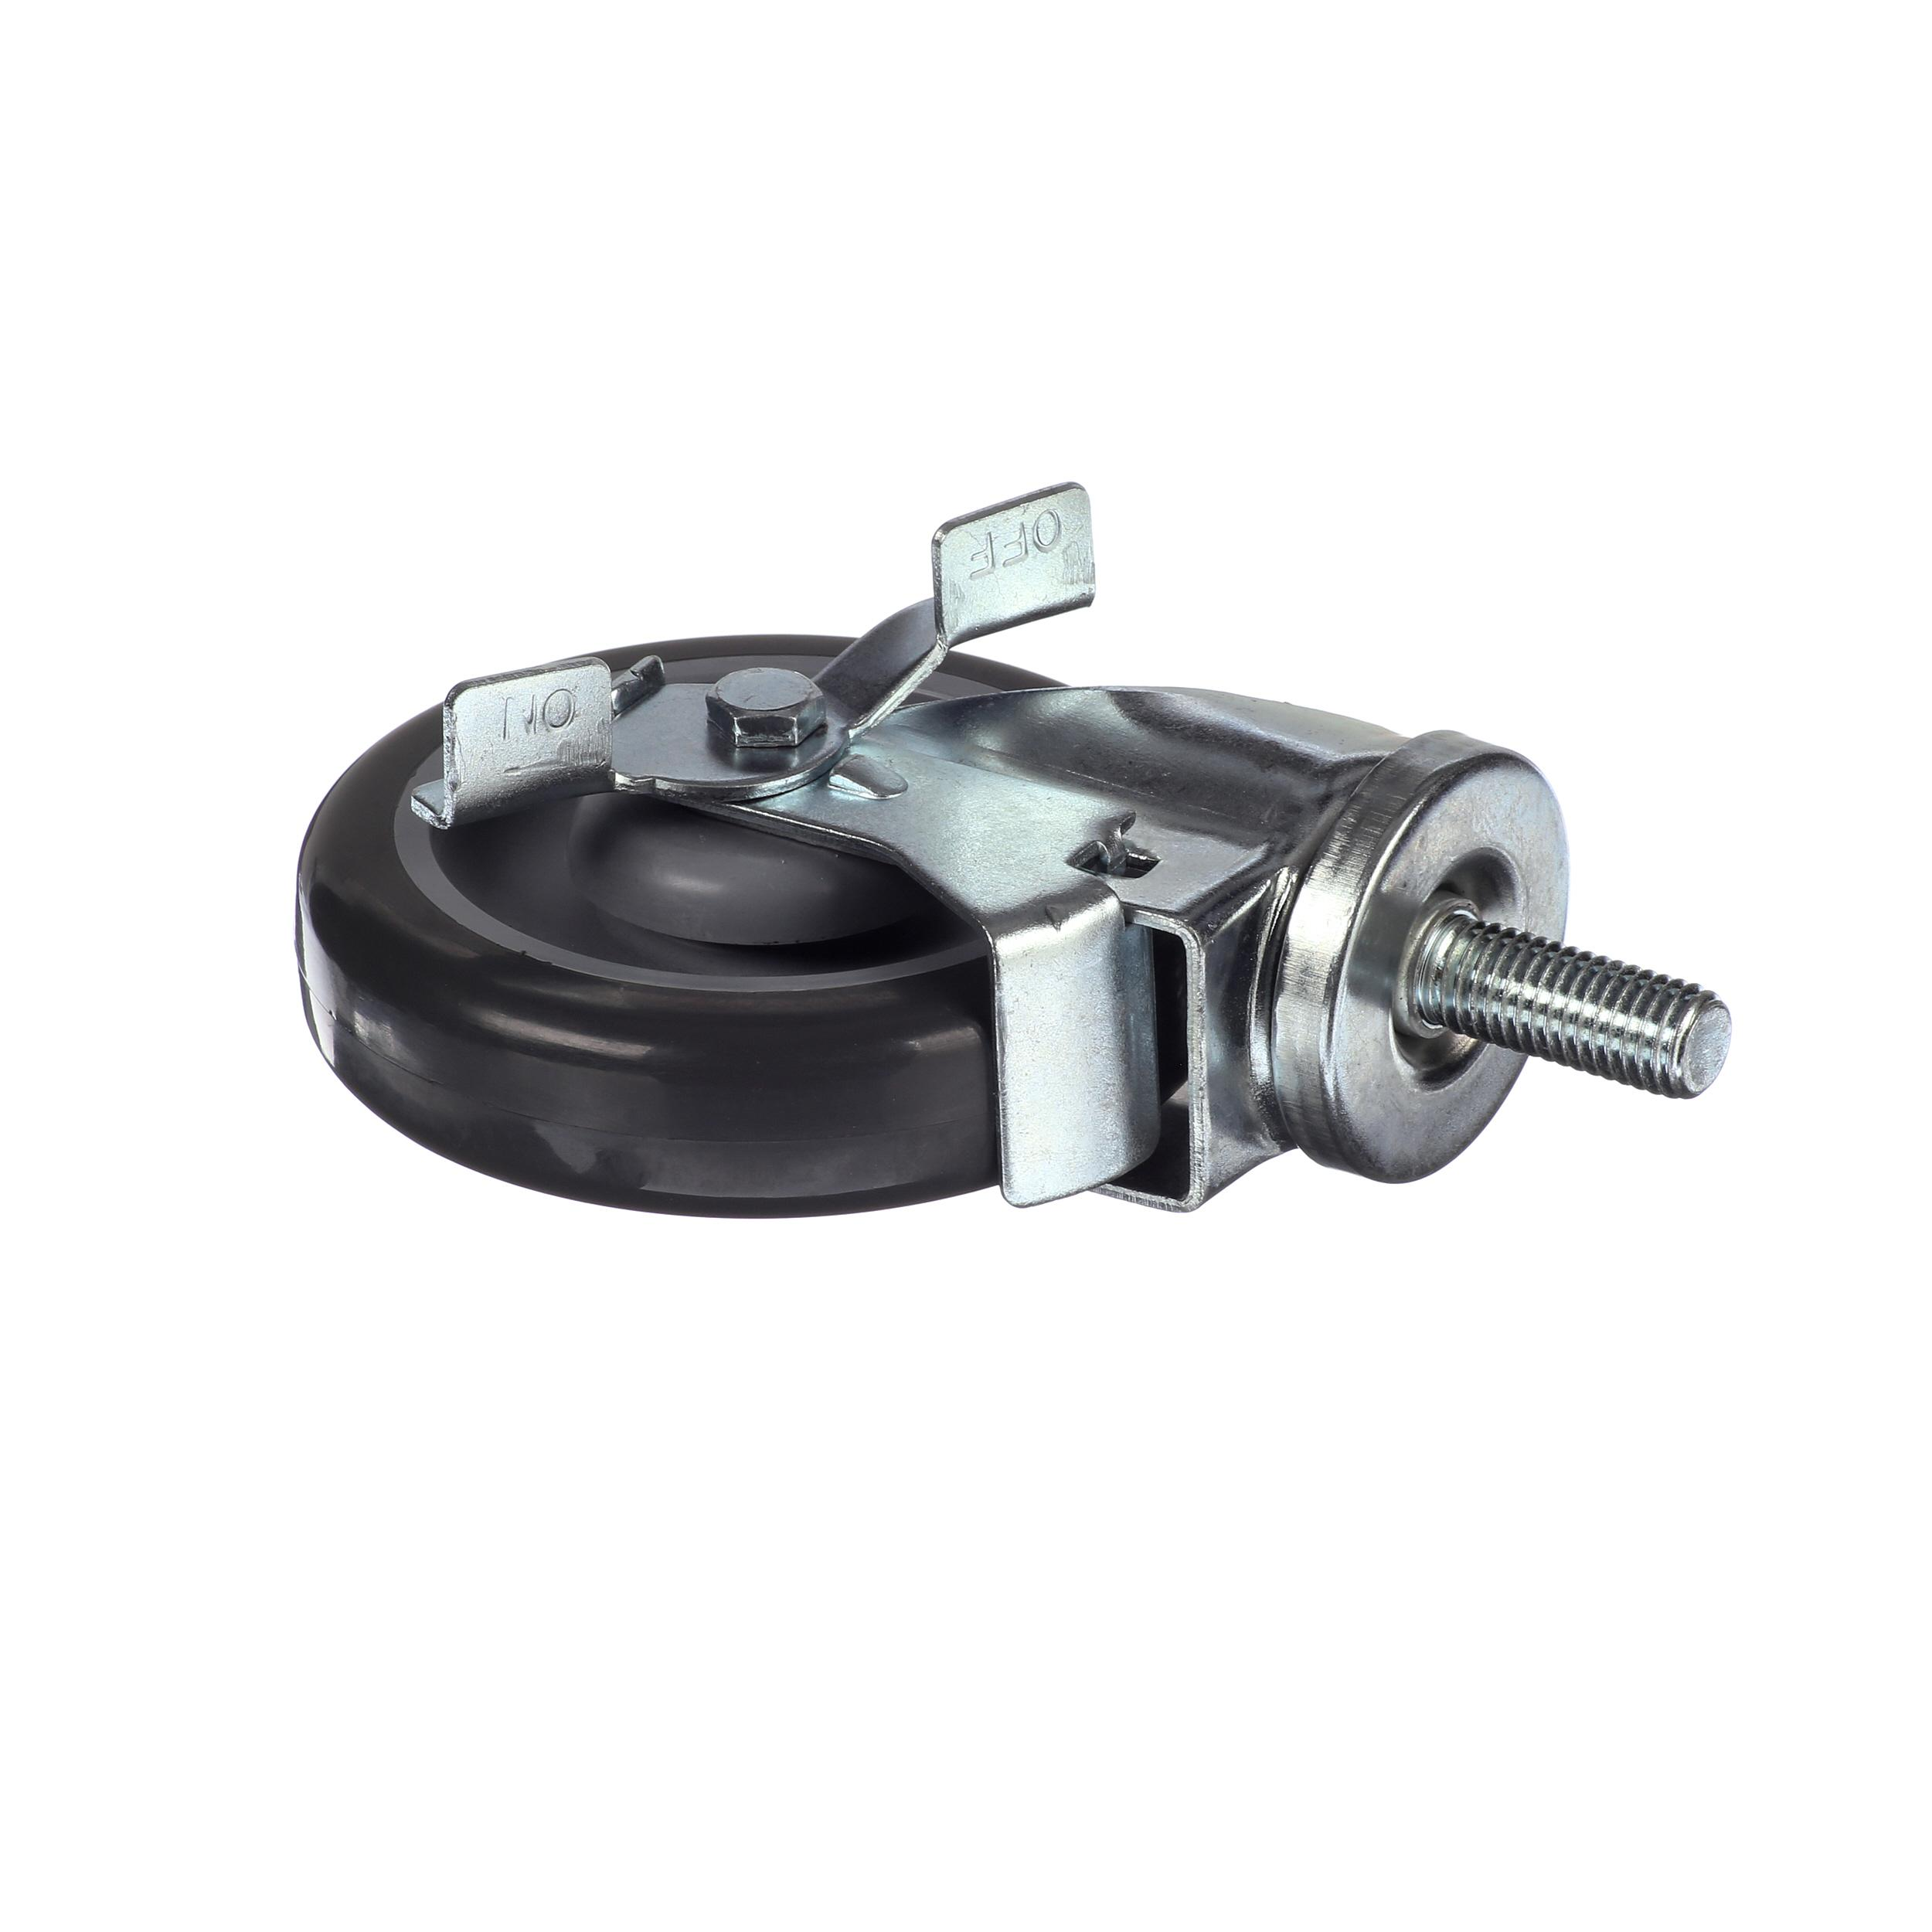 "WINSTON PRODUCTS CASTER 5"" STEM THREADED LOCK"